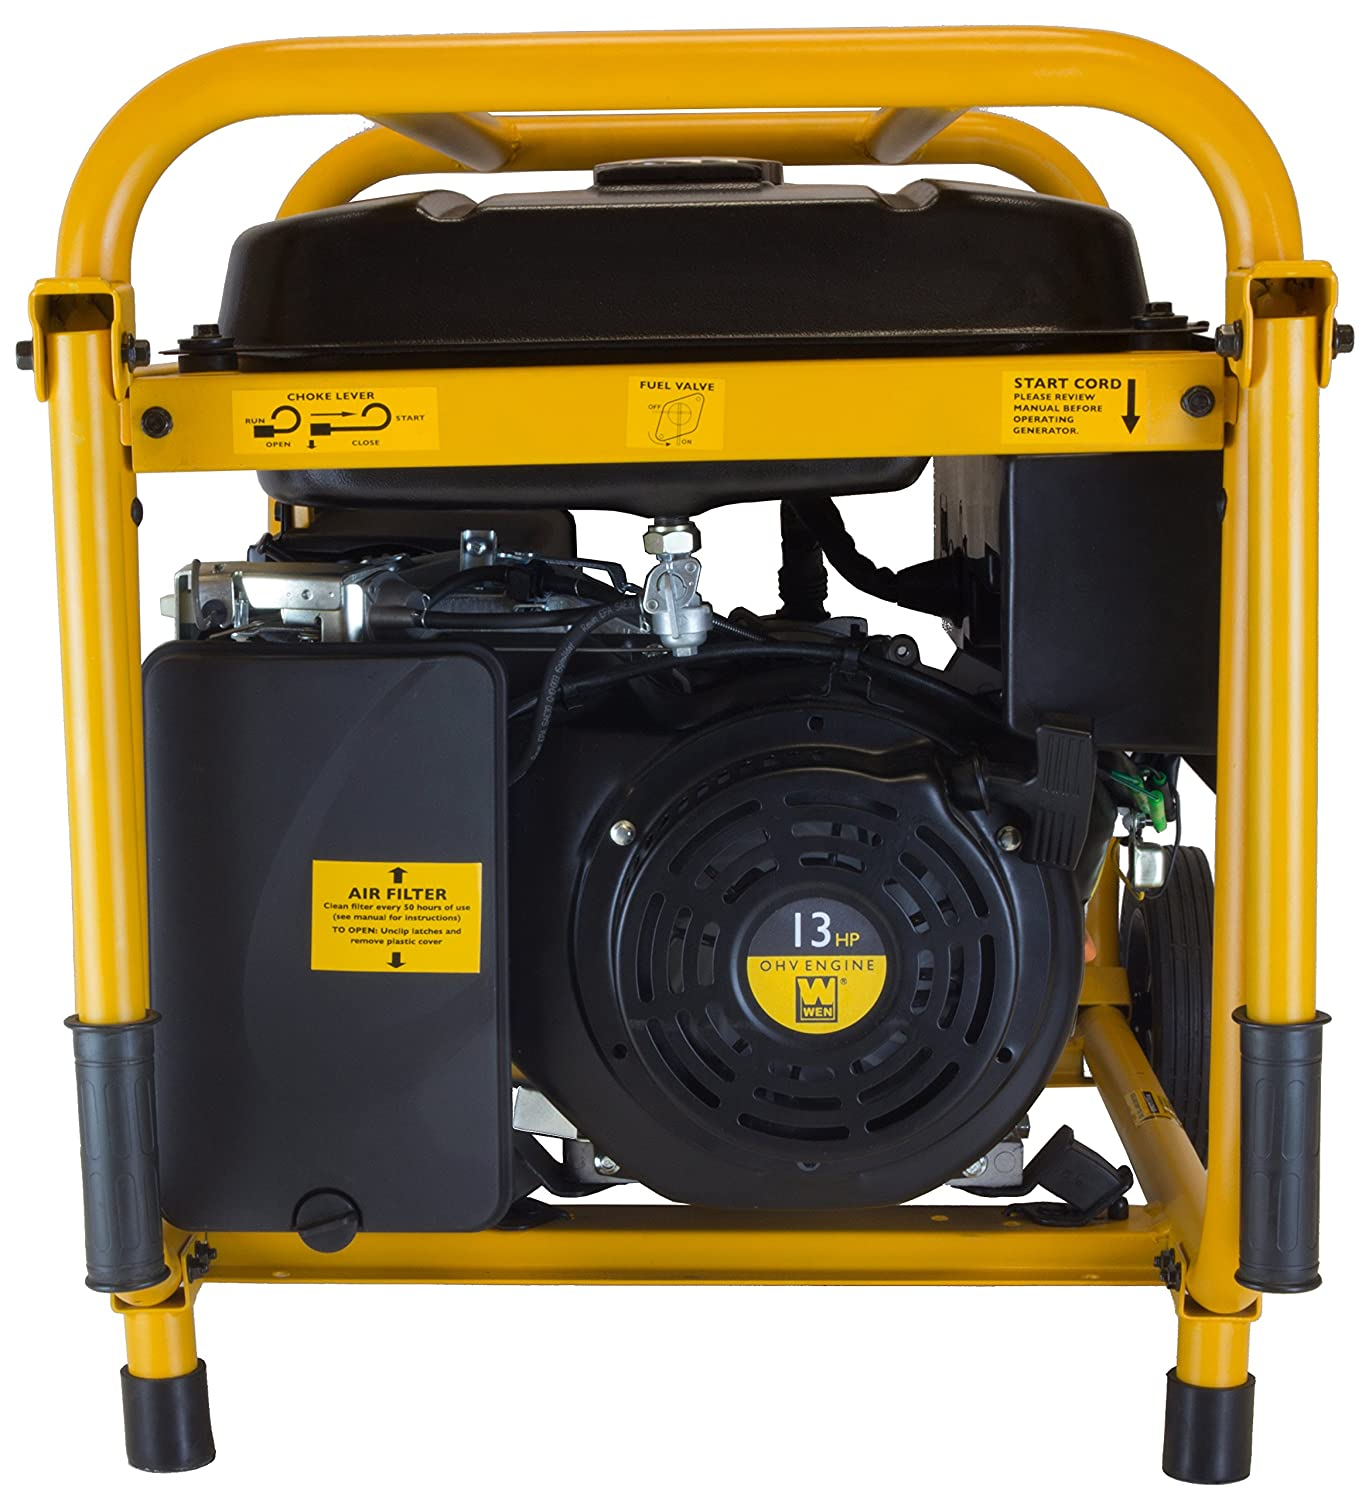 Amazon.com : WEN 56551, 5000 Running Watts/5500 Starting Watts, Gas Powered  Portable Generator : Garden & Outdoor